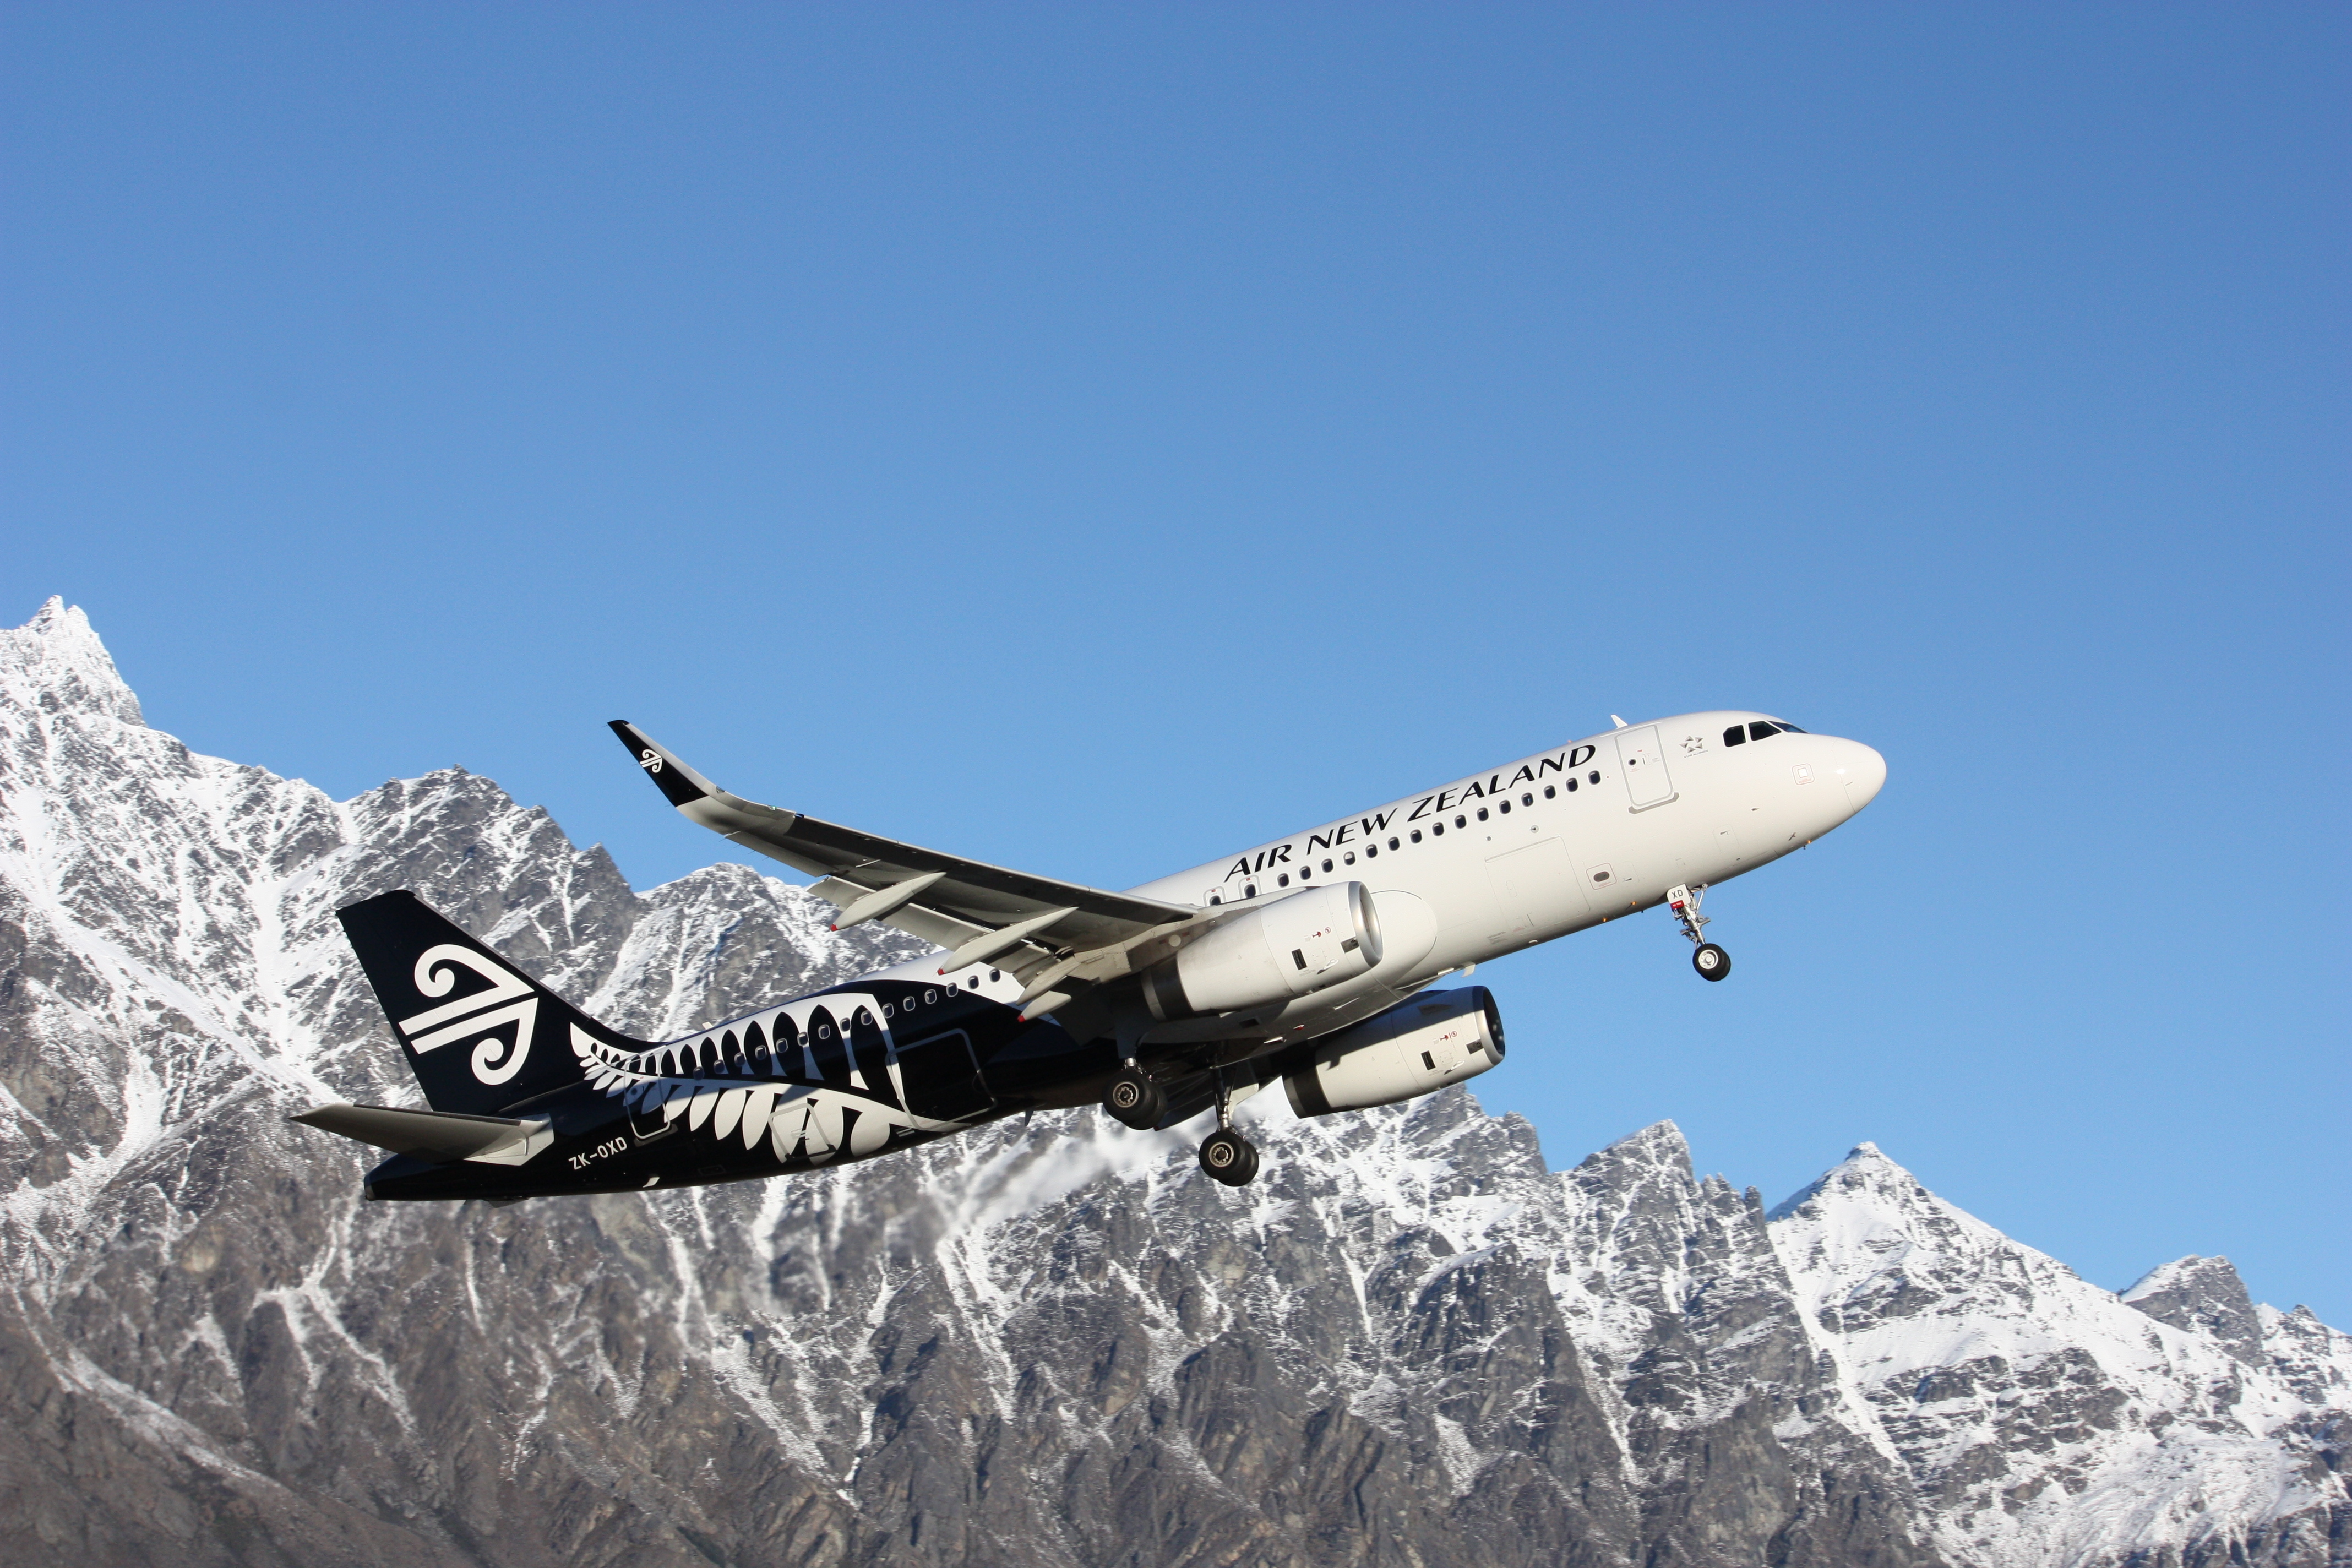 Airplane Air New Zealand take-off from Queenstown, August 16, 2014.